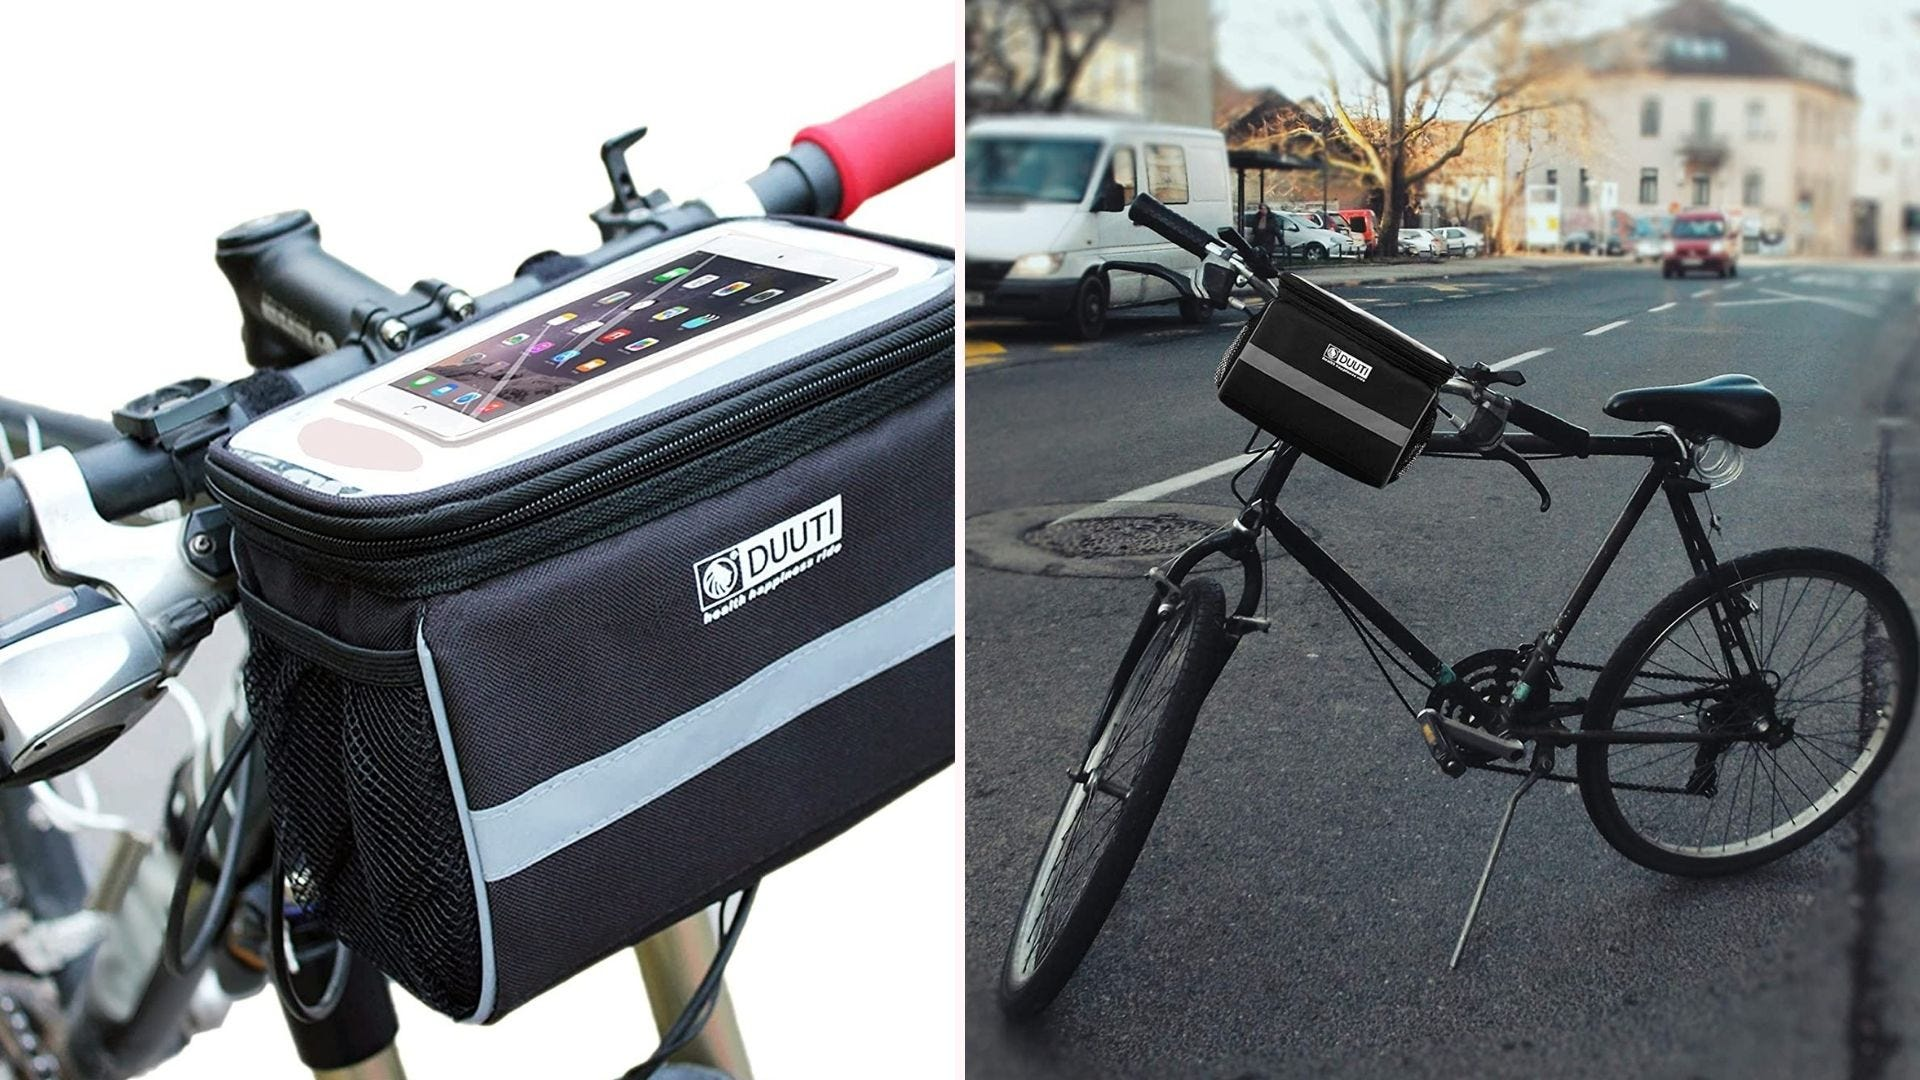 a bike basket resembling a small soft cooler strapped onto the front handlebar